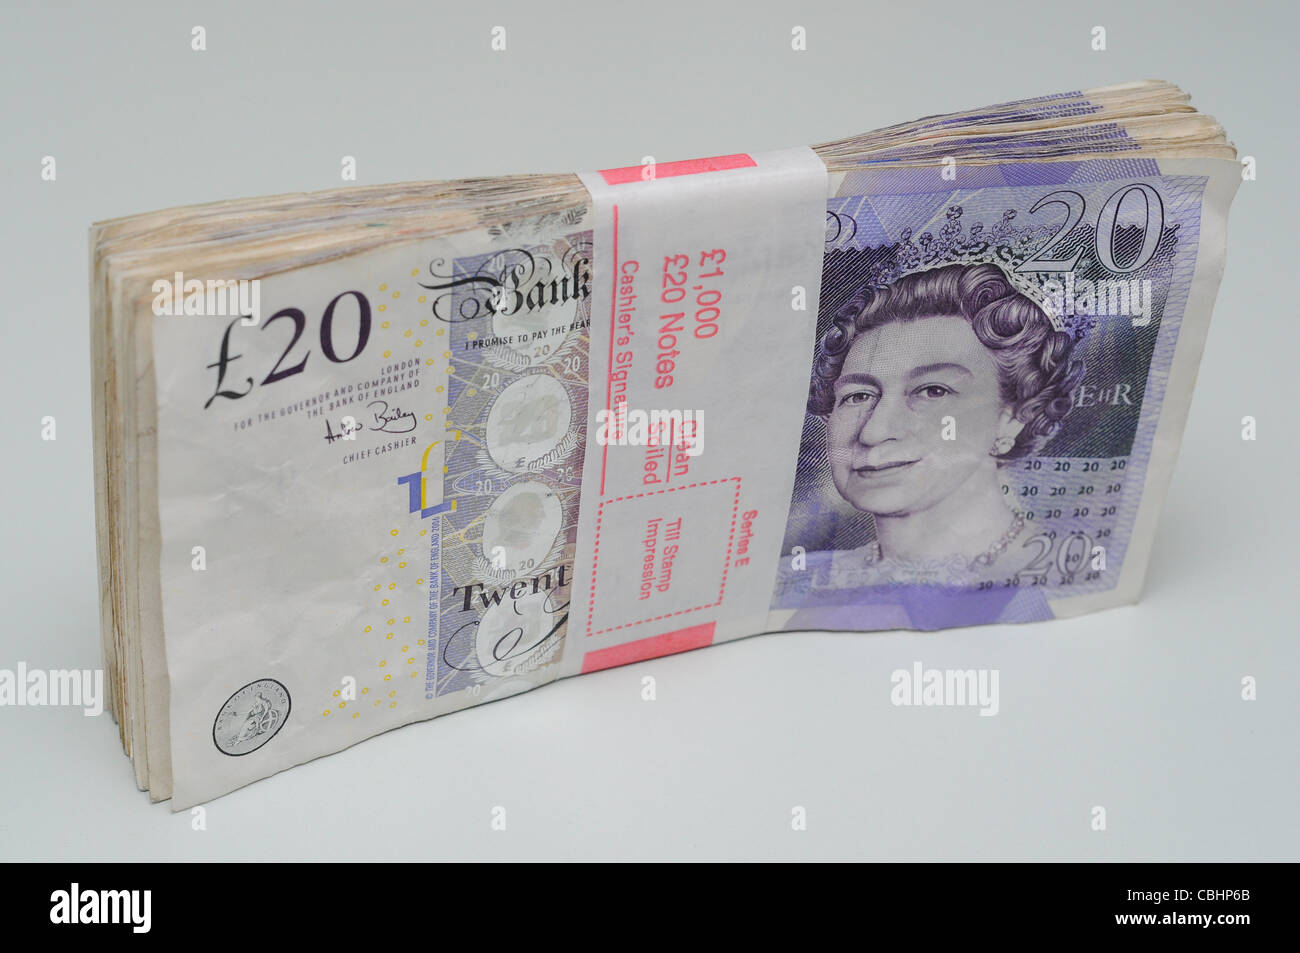 Bank wrapped bundle of one thousand pounds in twenty pound notes. Stock Photo